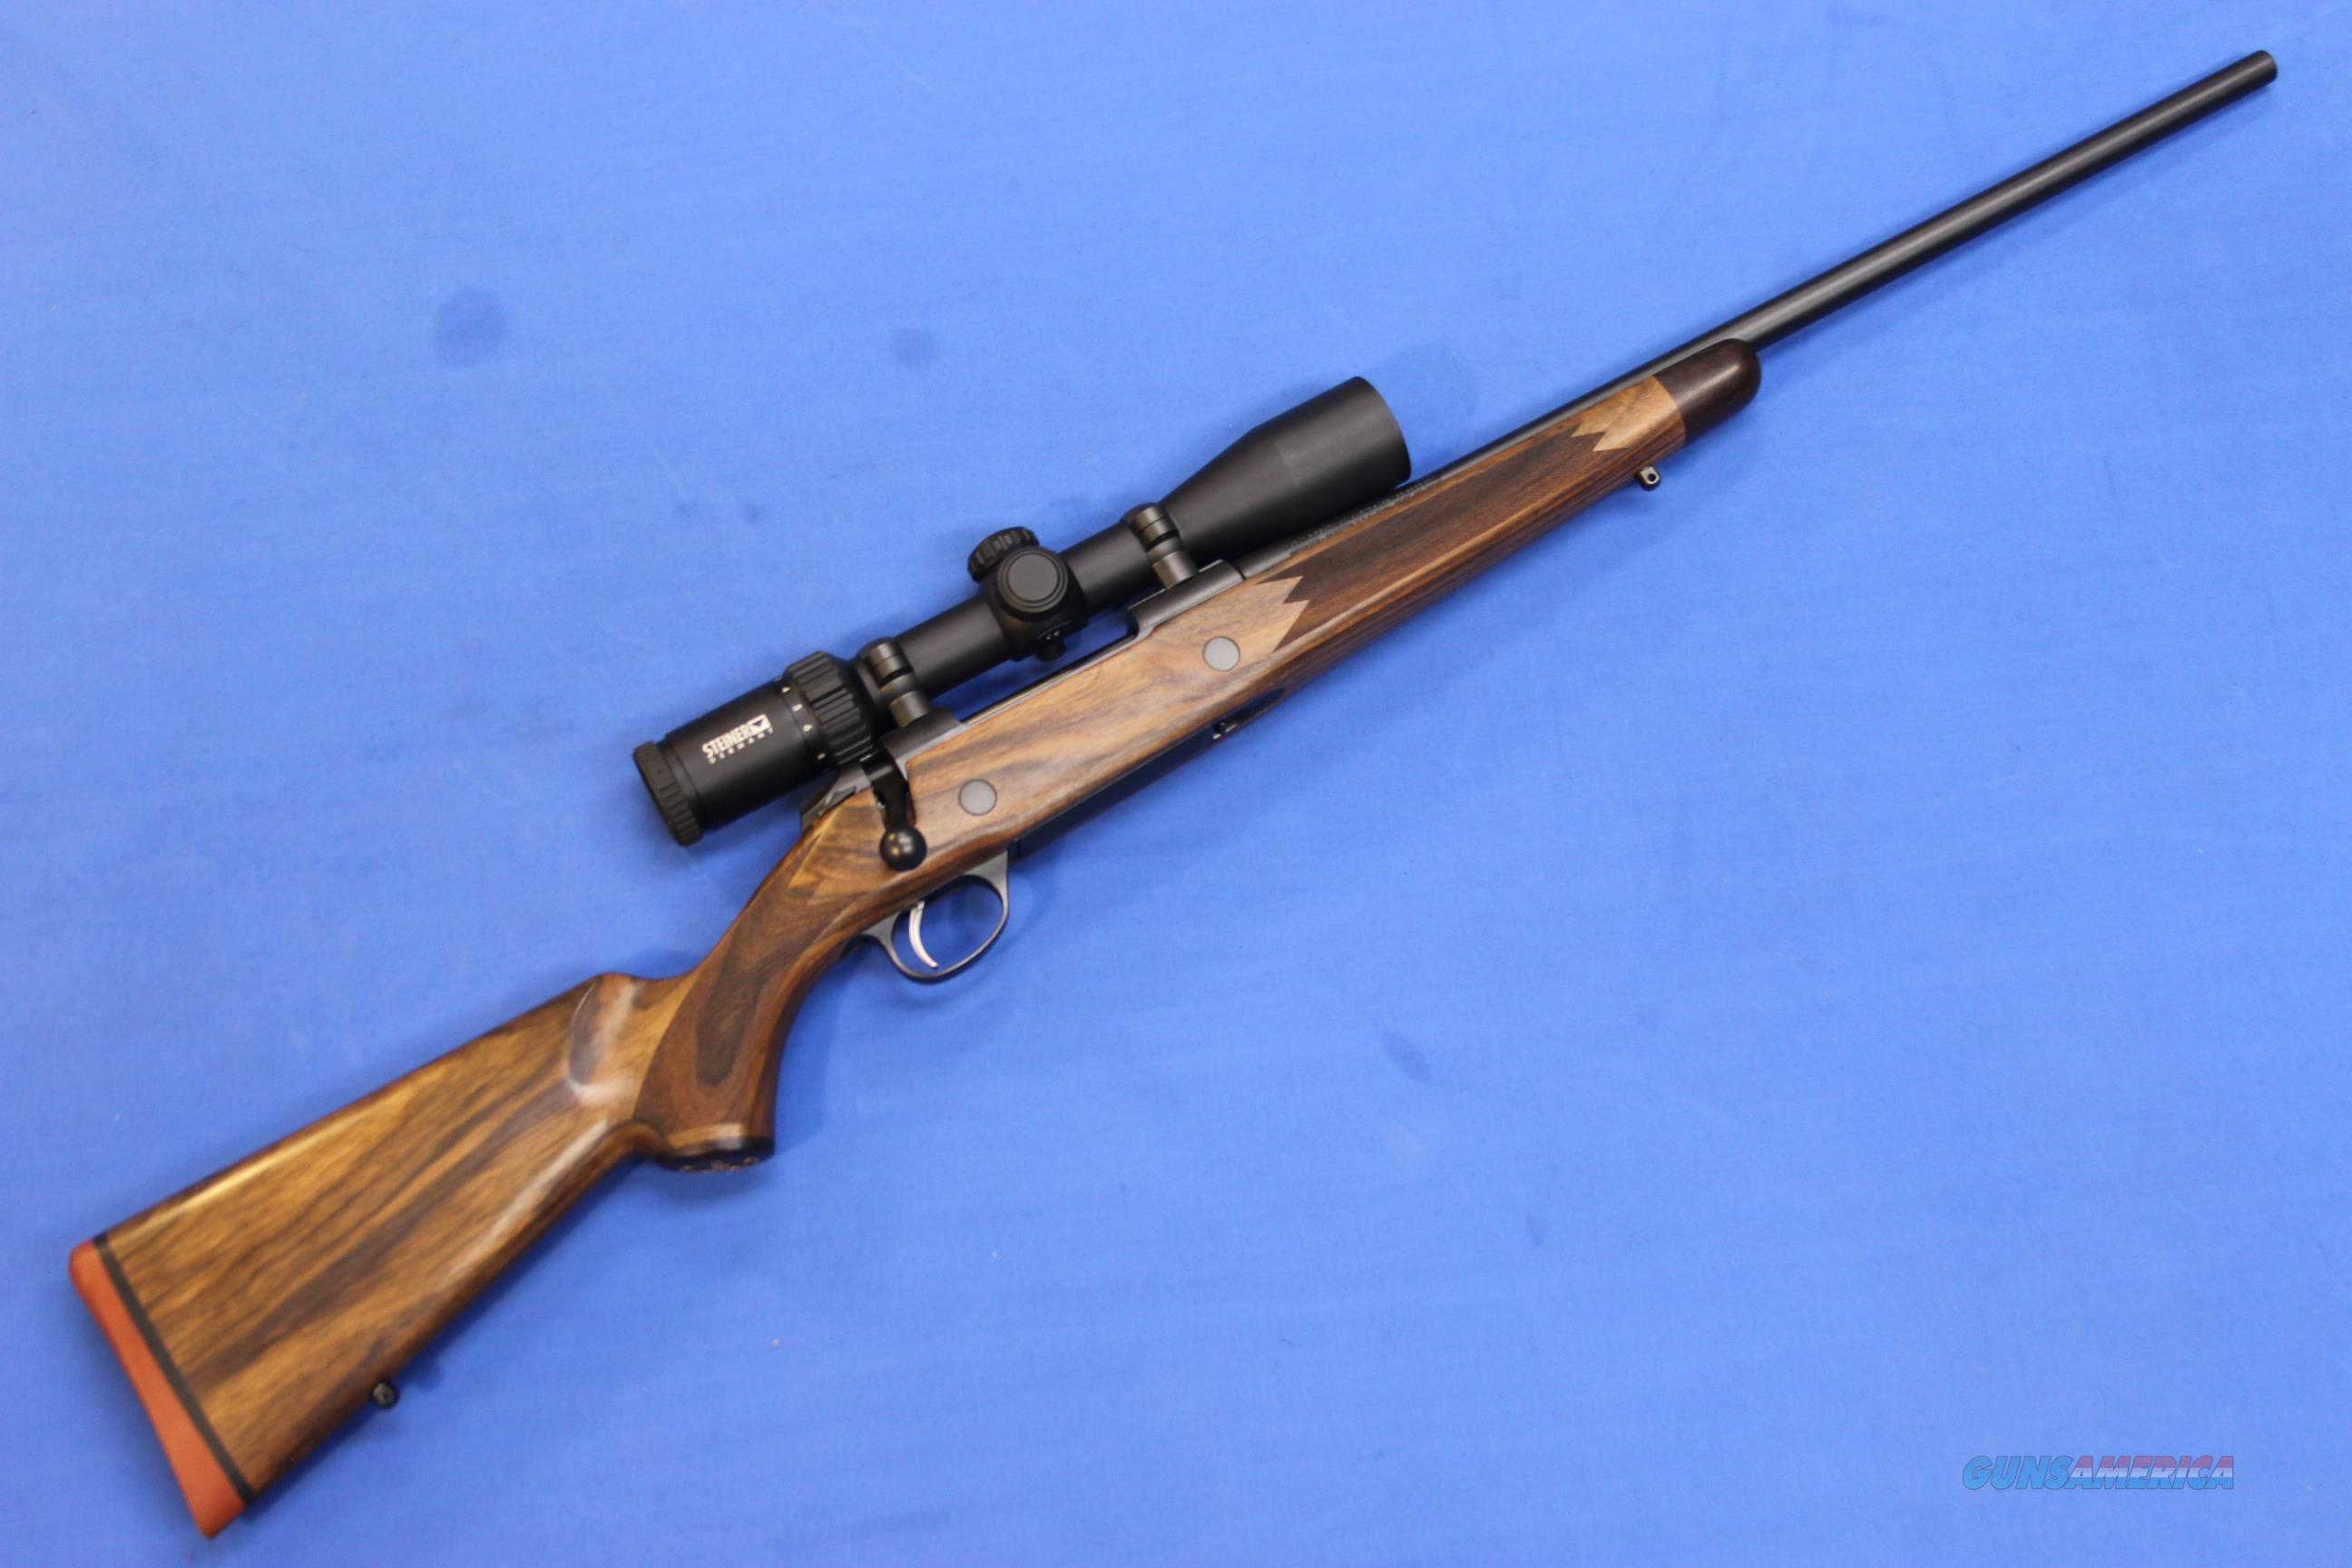 SAKO 85 CLASSIC .30-06 SPRINGFIELD w/ STEINER SCOPE - LIKE NEW!  Guns > Rifles > Sako Rifles > M85 Series